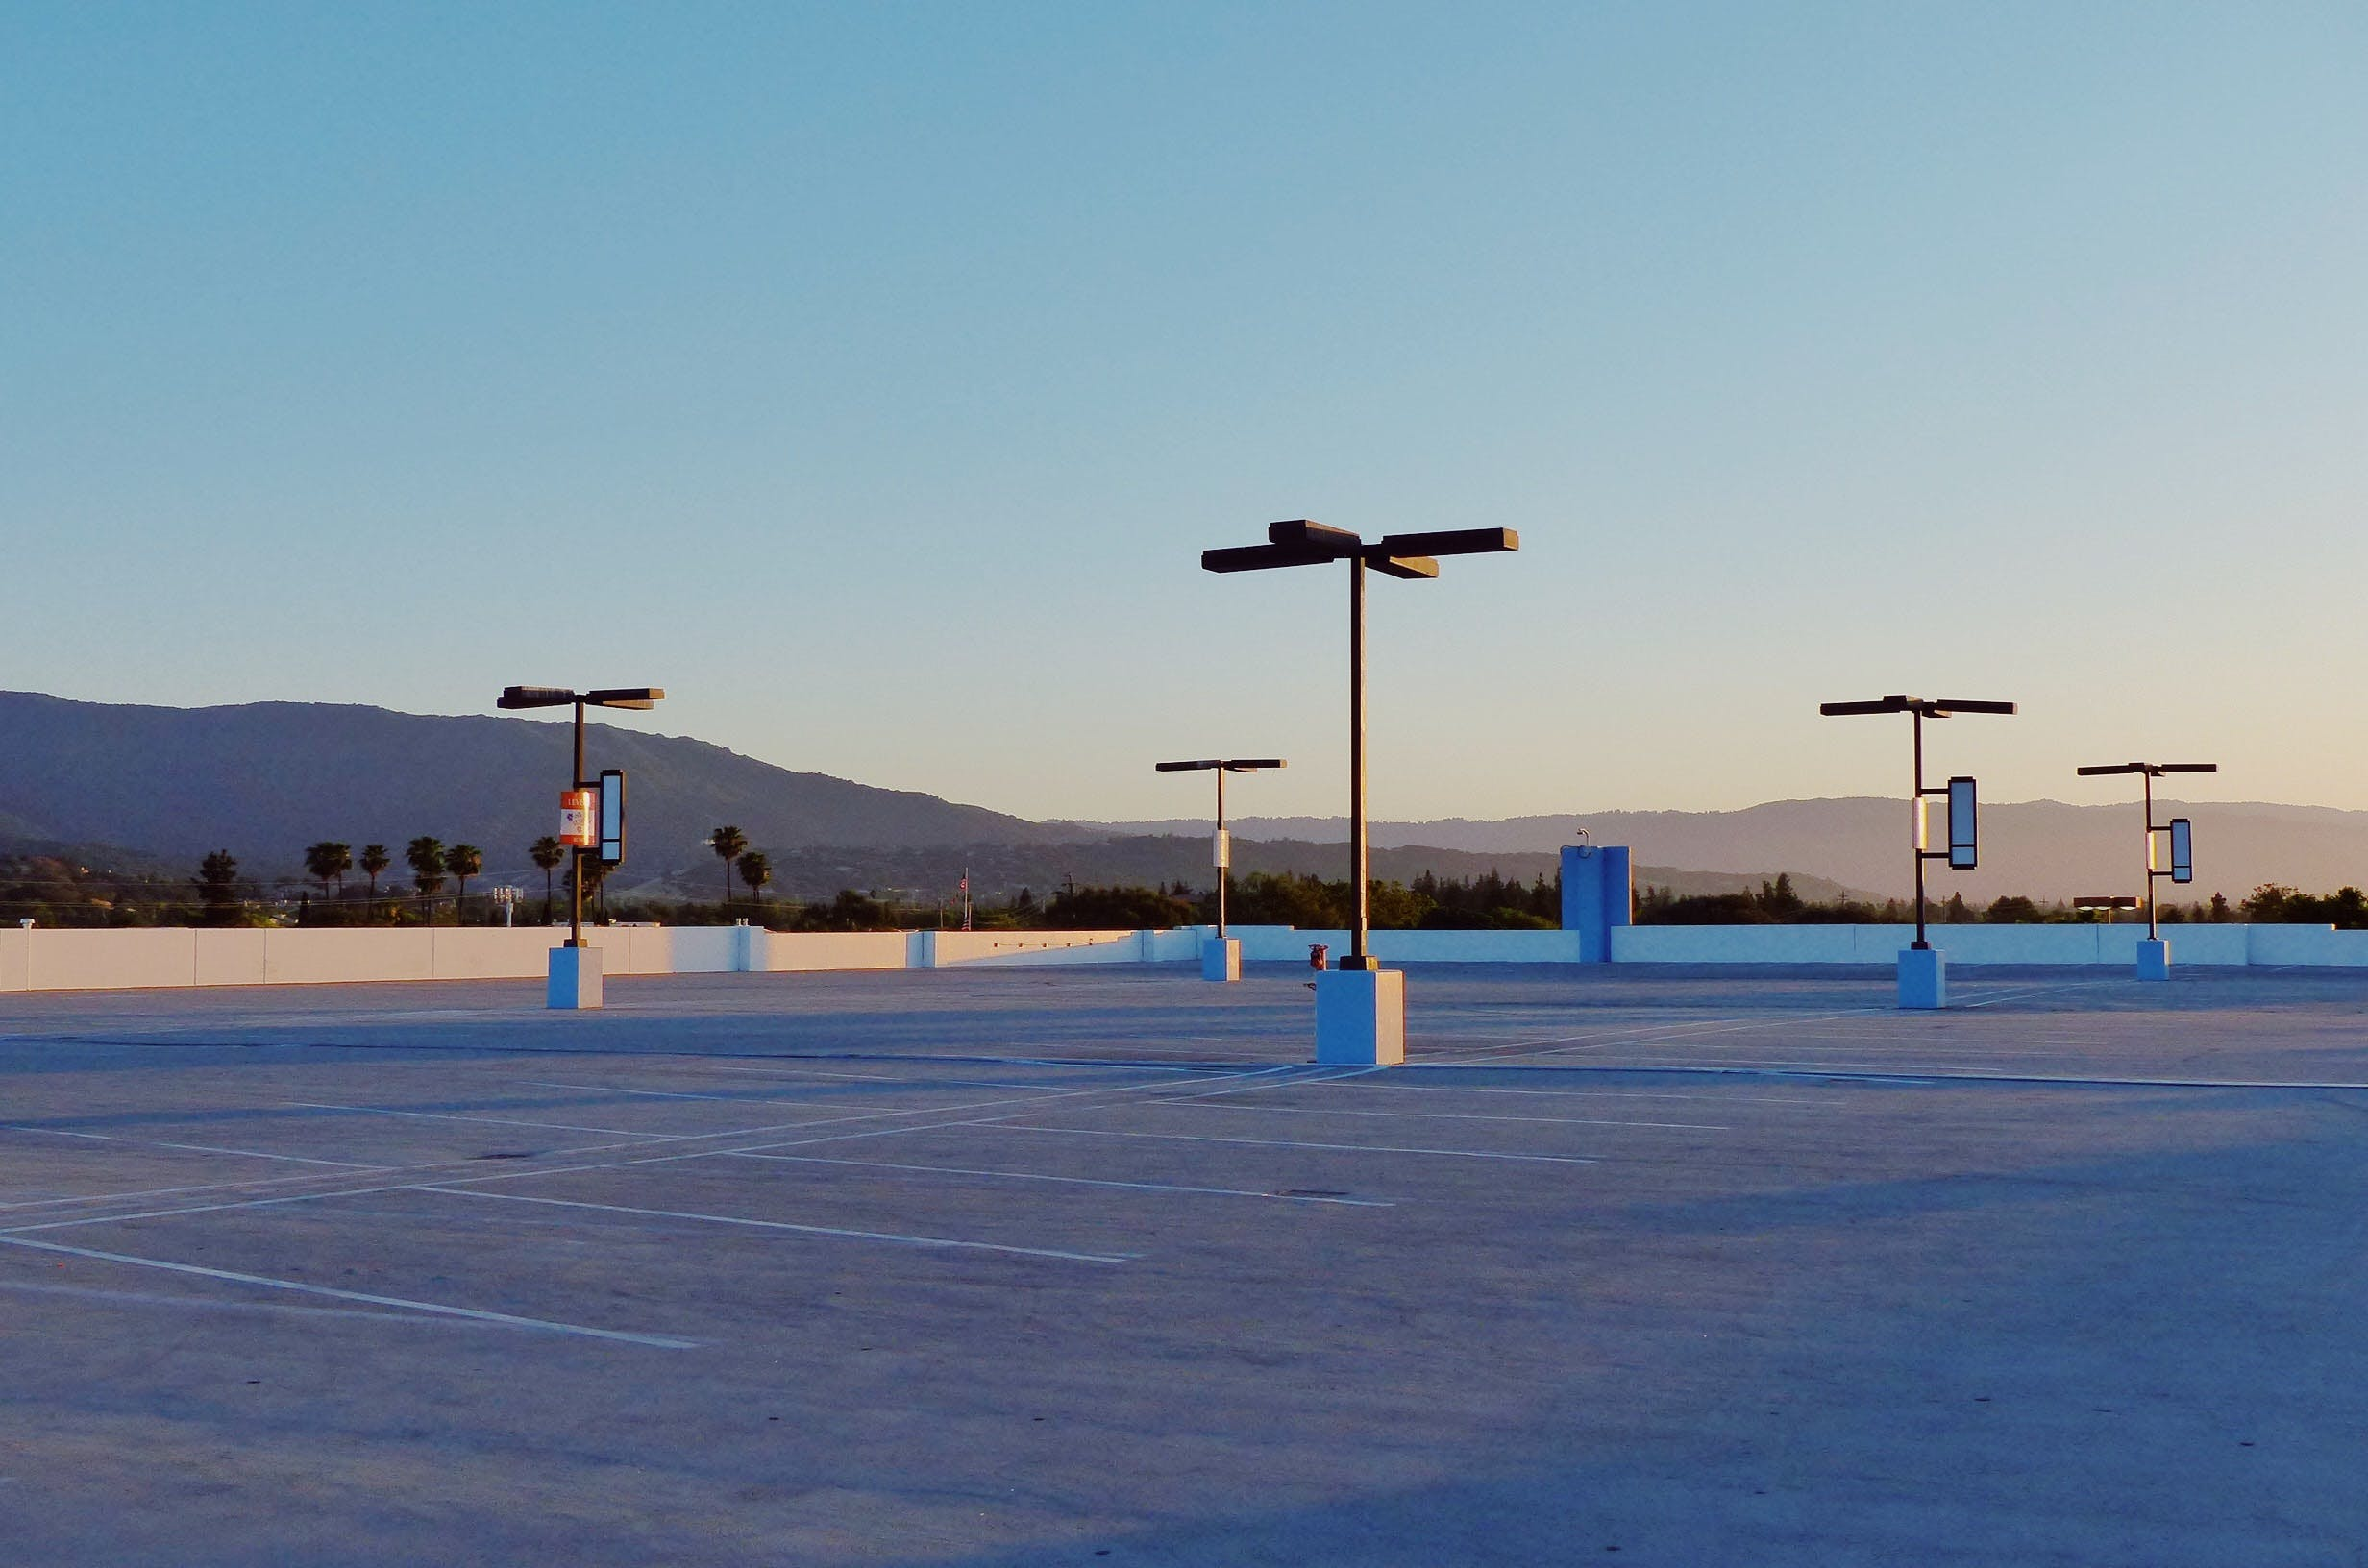 Free stock photo of lamps, lavender, minimalism, parking area